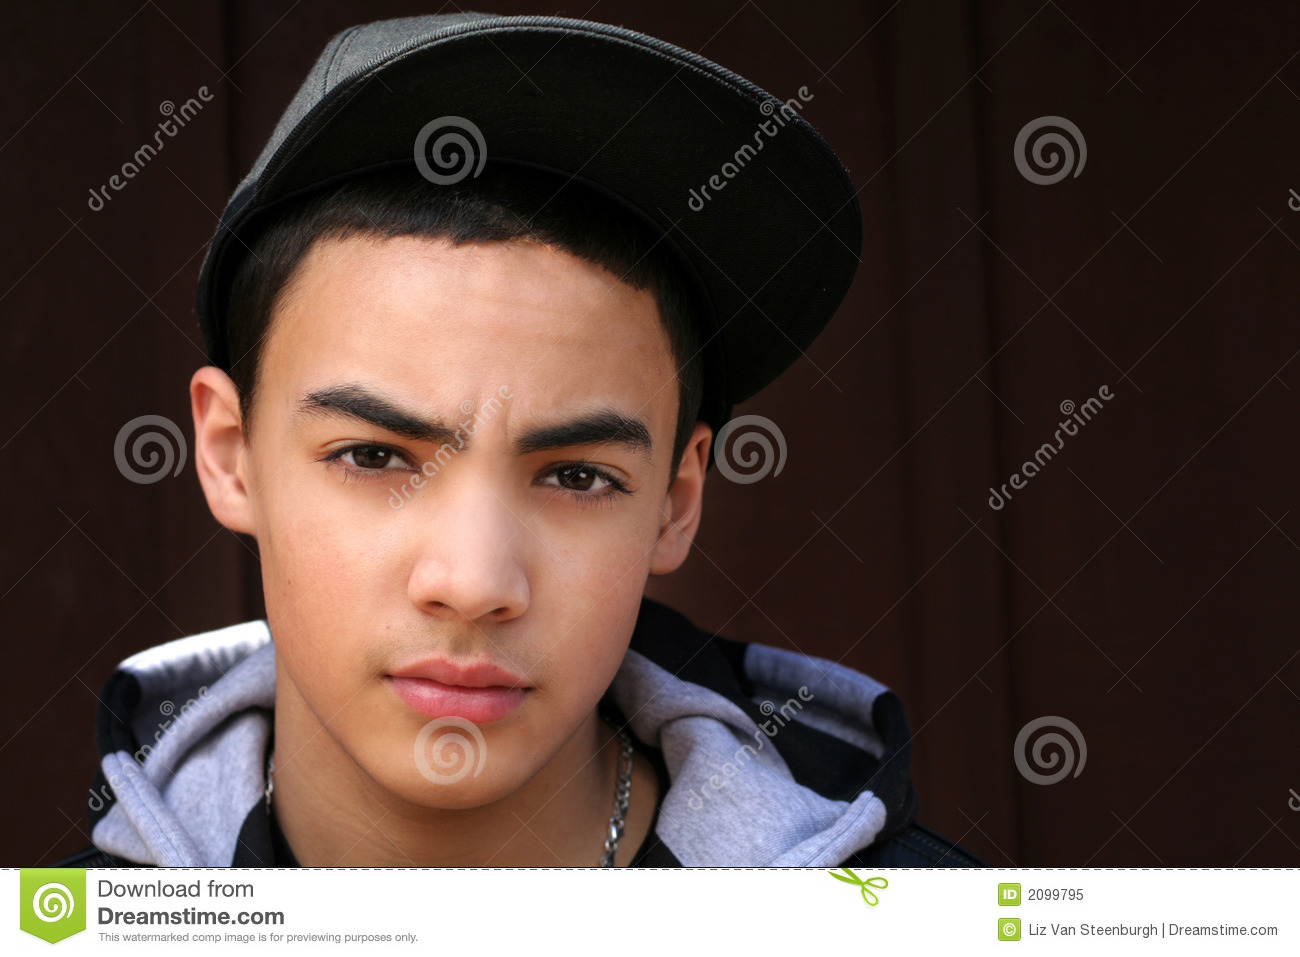 Teen Boy With Hat stock image. Image of male b772d399f38